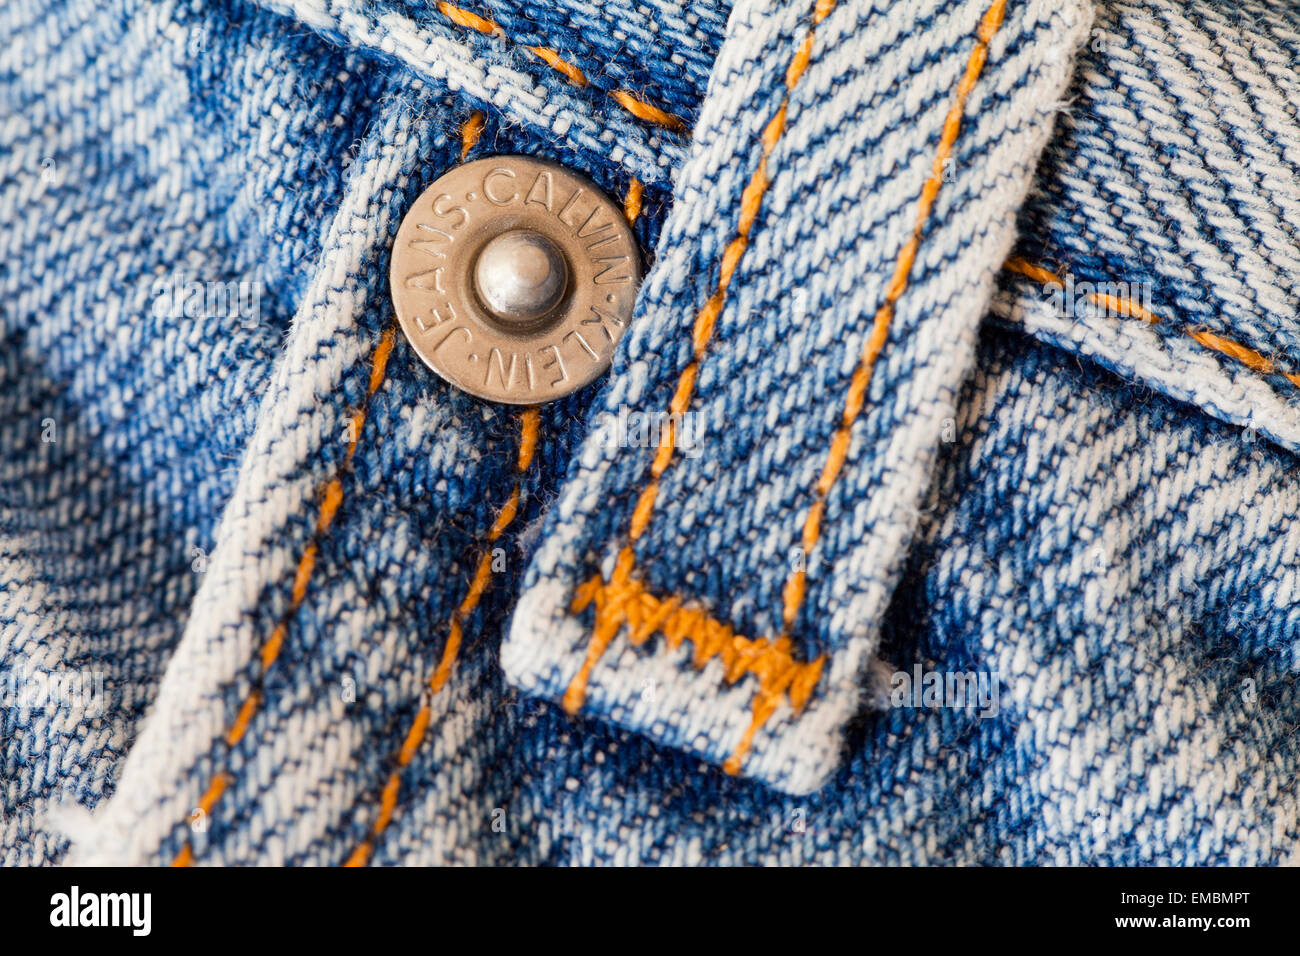 Belt loop and rivet on pair of Calvin Klein blue jeans - Stock Image